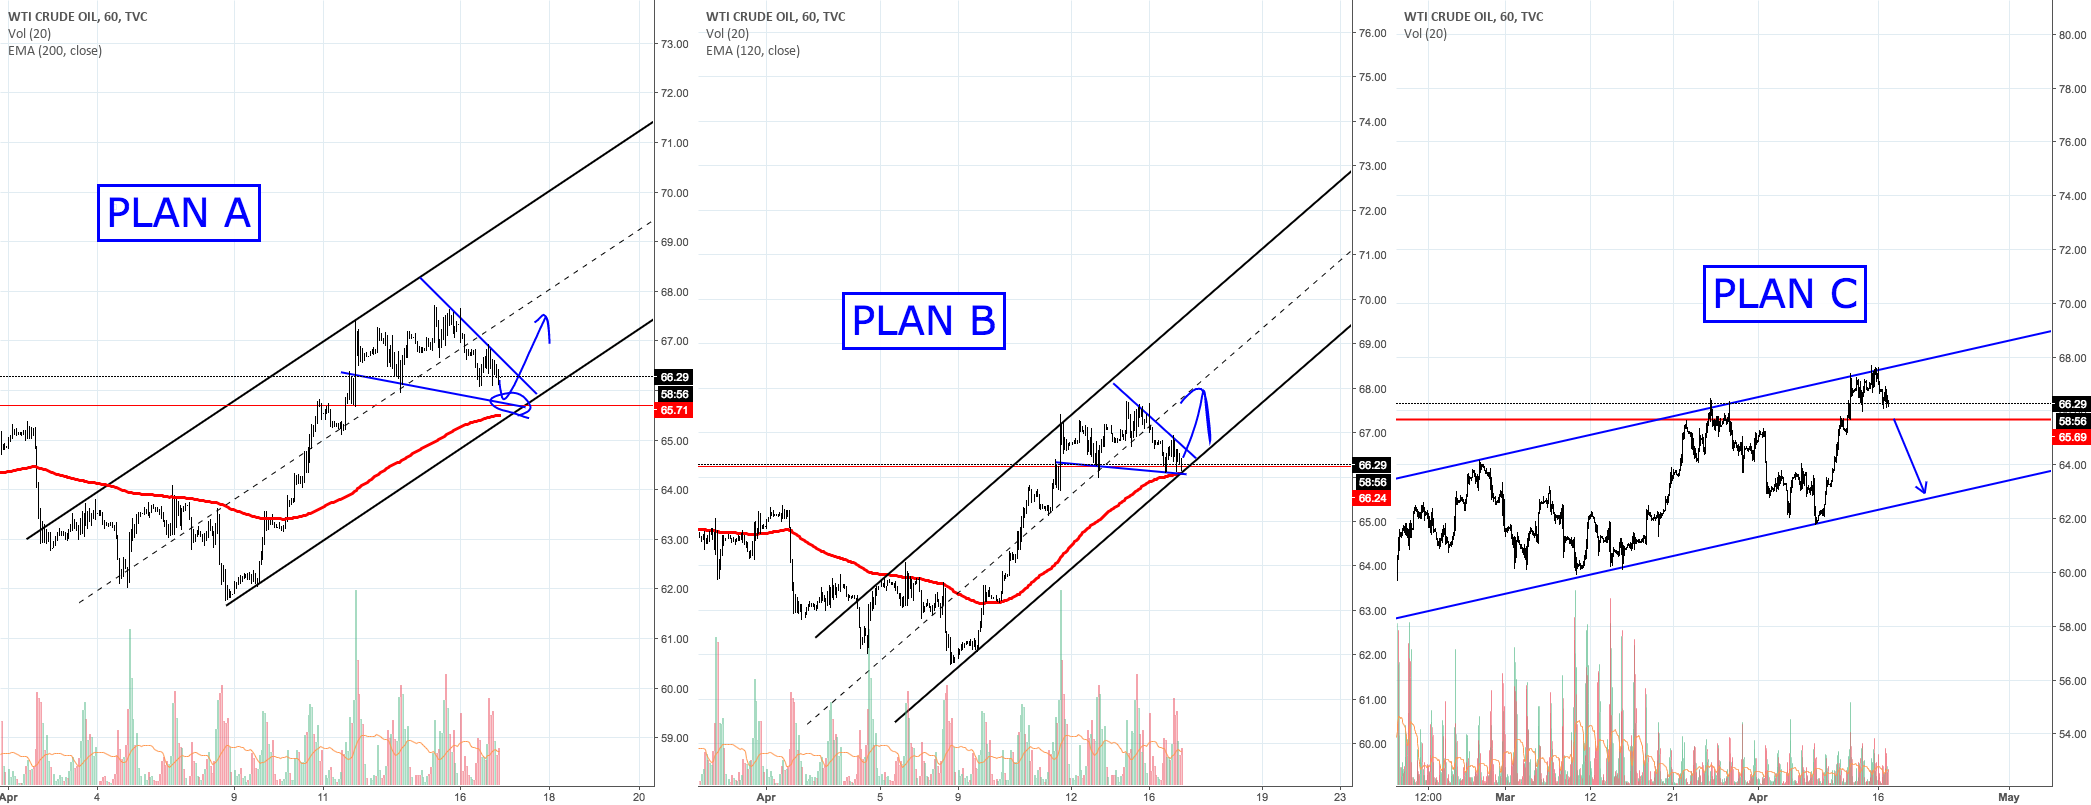 USOIL. PLAN A, B and C